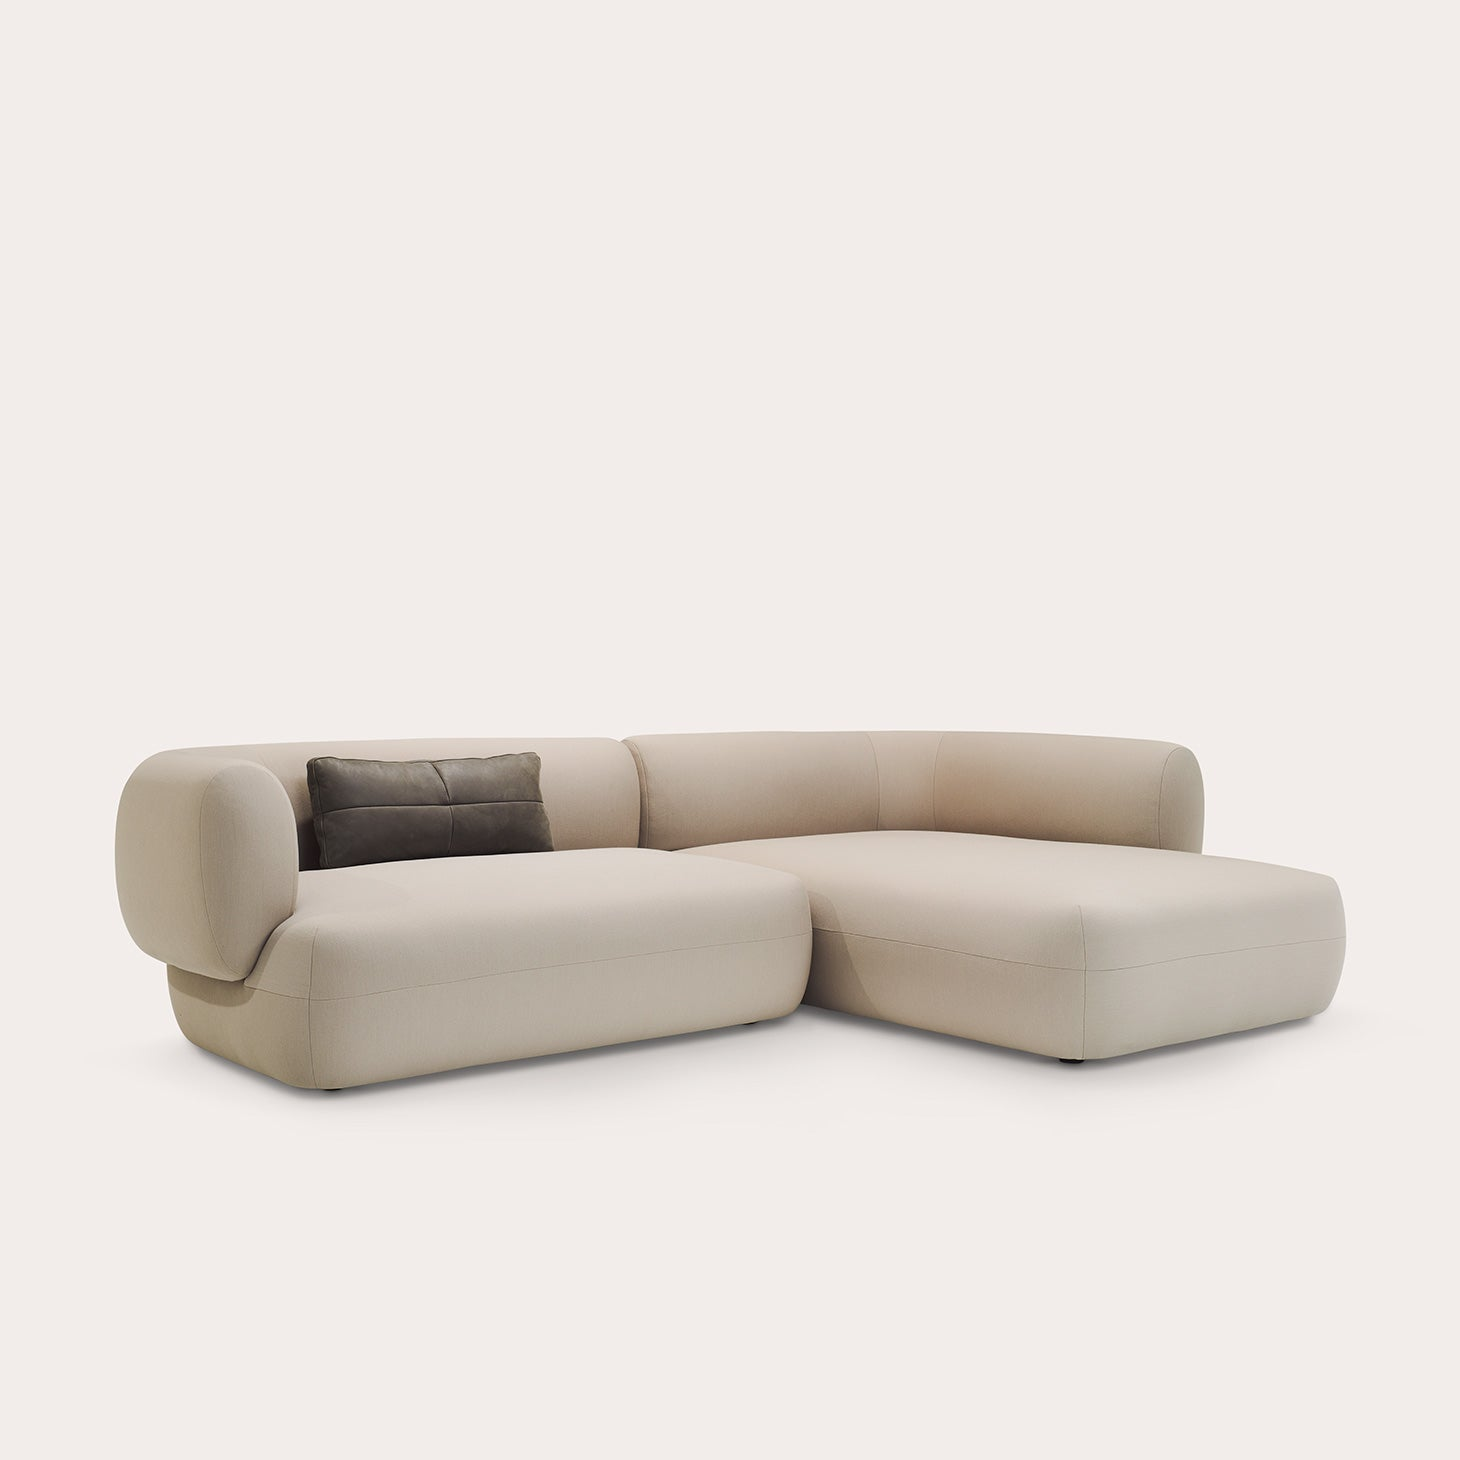 Arp Sofa One Arm Seating Sebastian Herkner Designer Furniture Sku: 247-240-10357